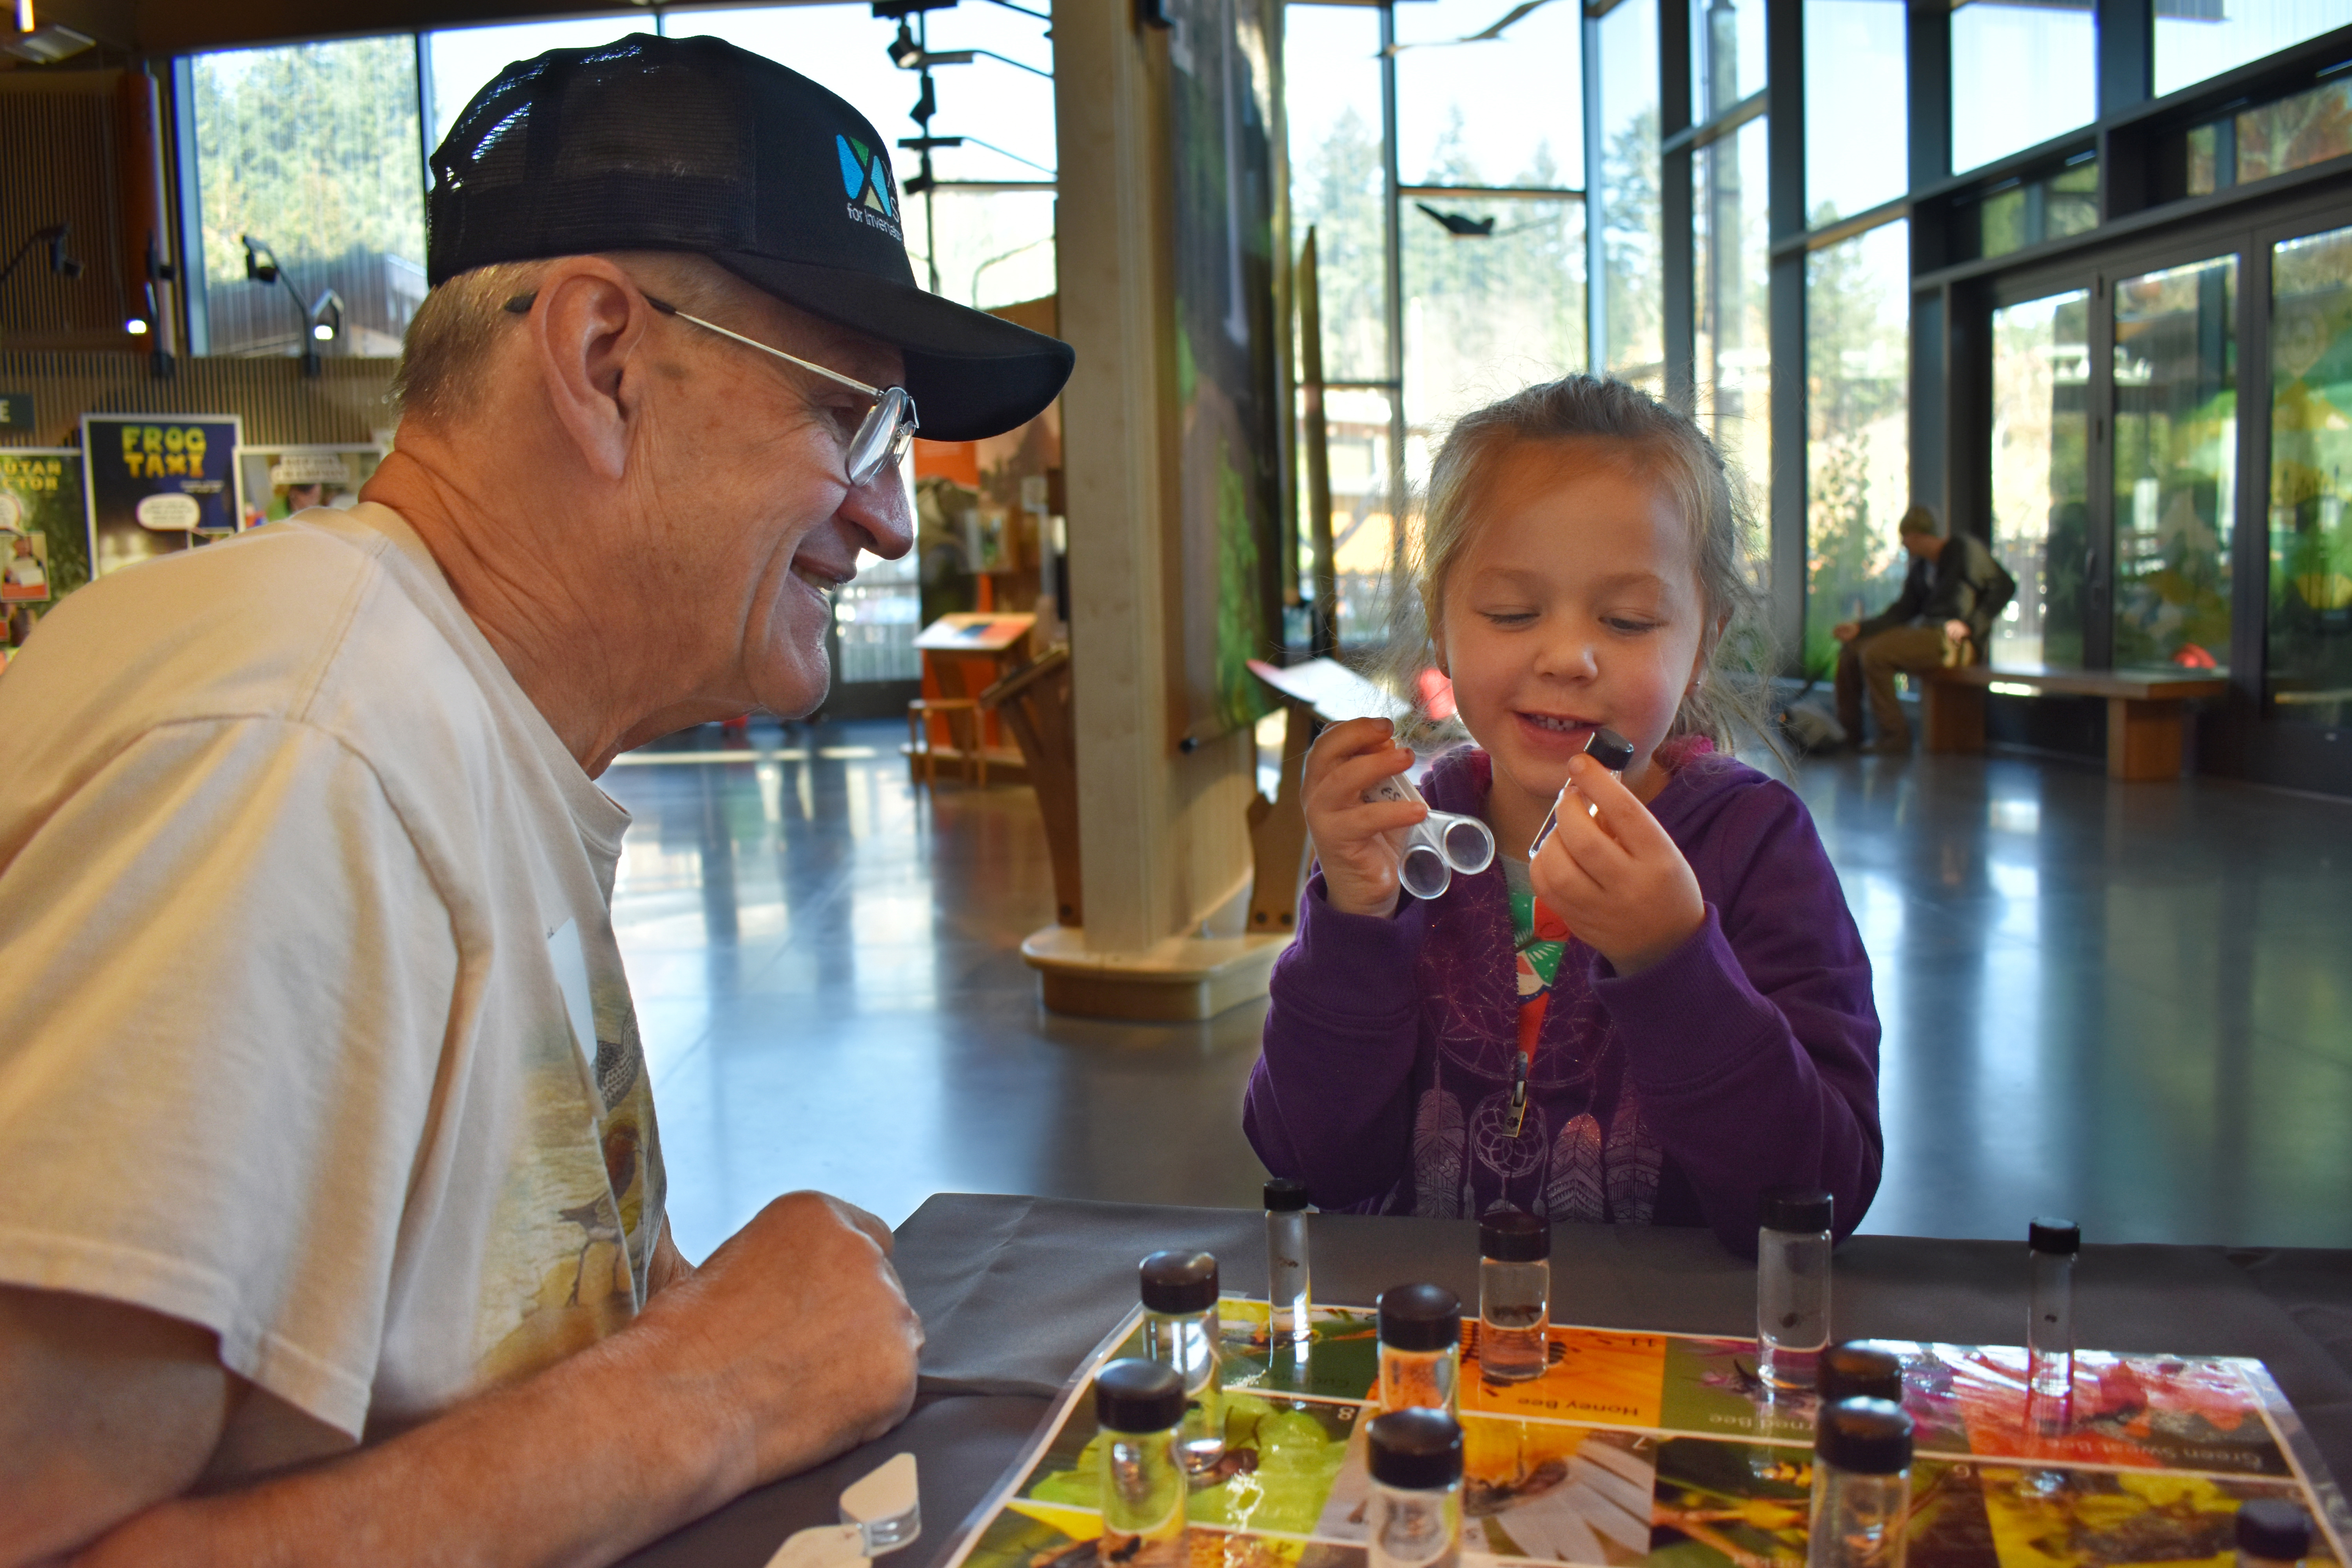 A Xerces volunteer talking with a little girl about bees at a table as she hols a magnifying glass.